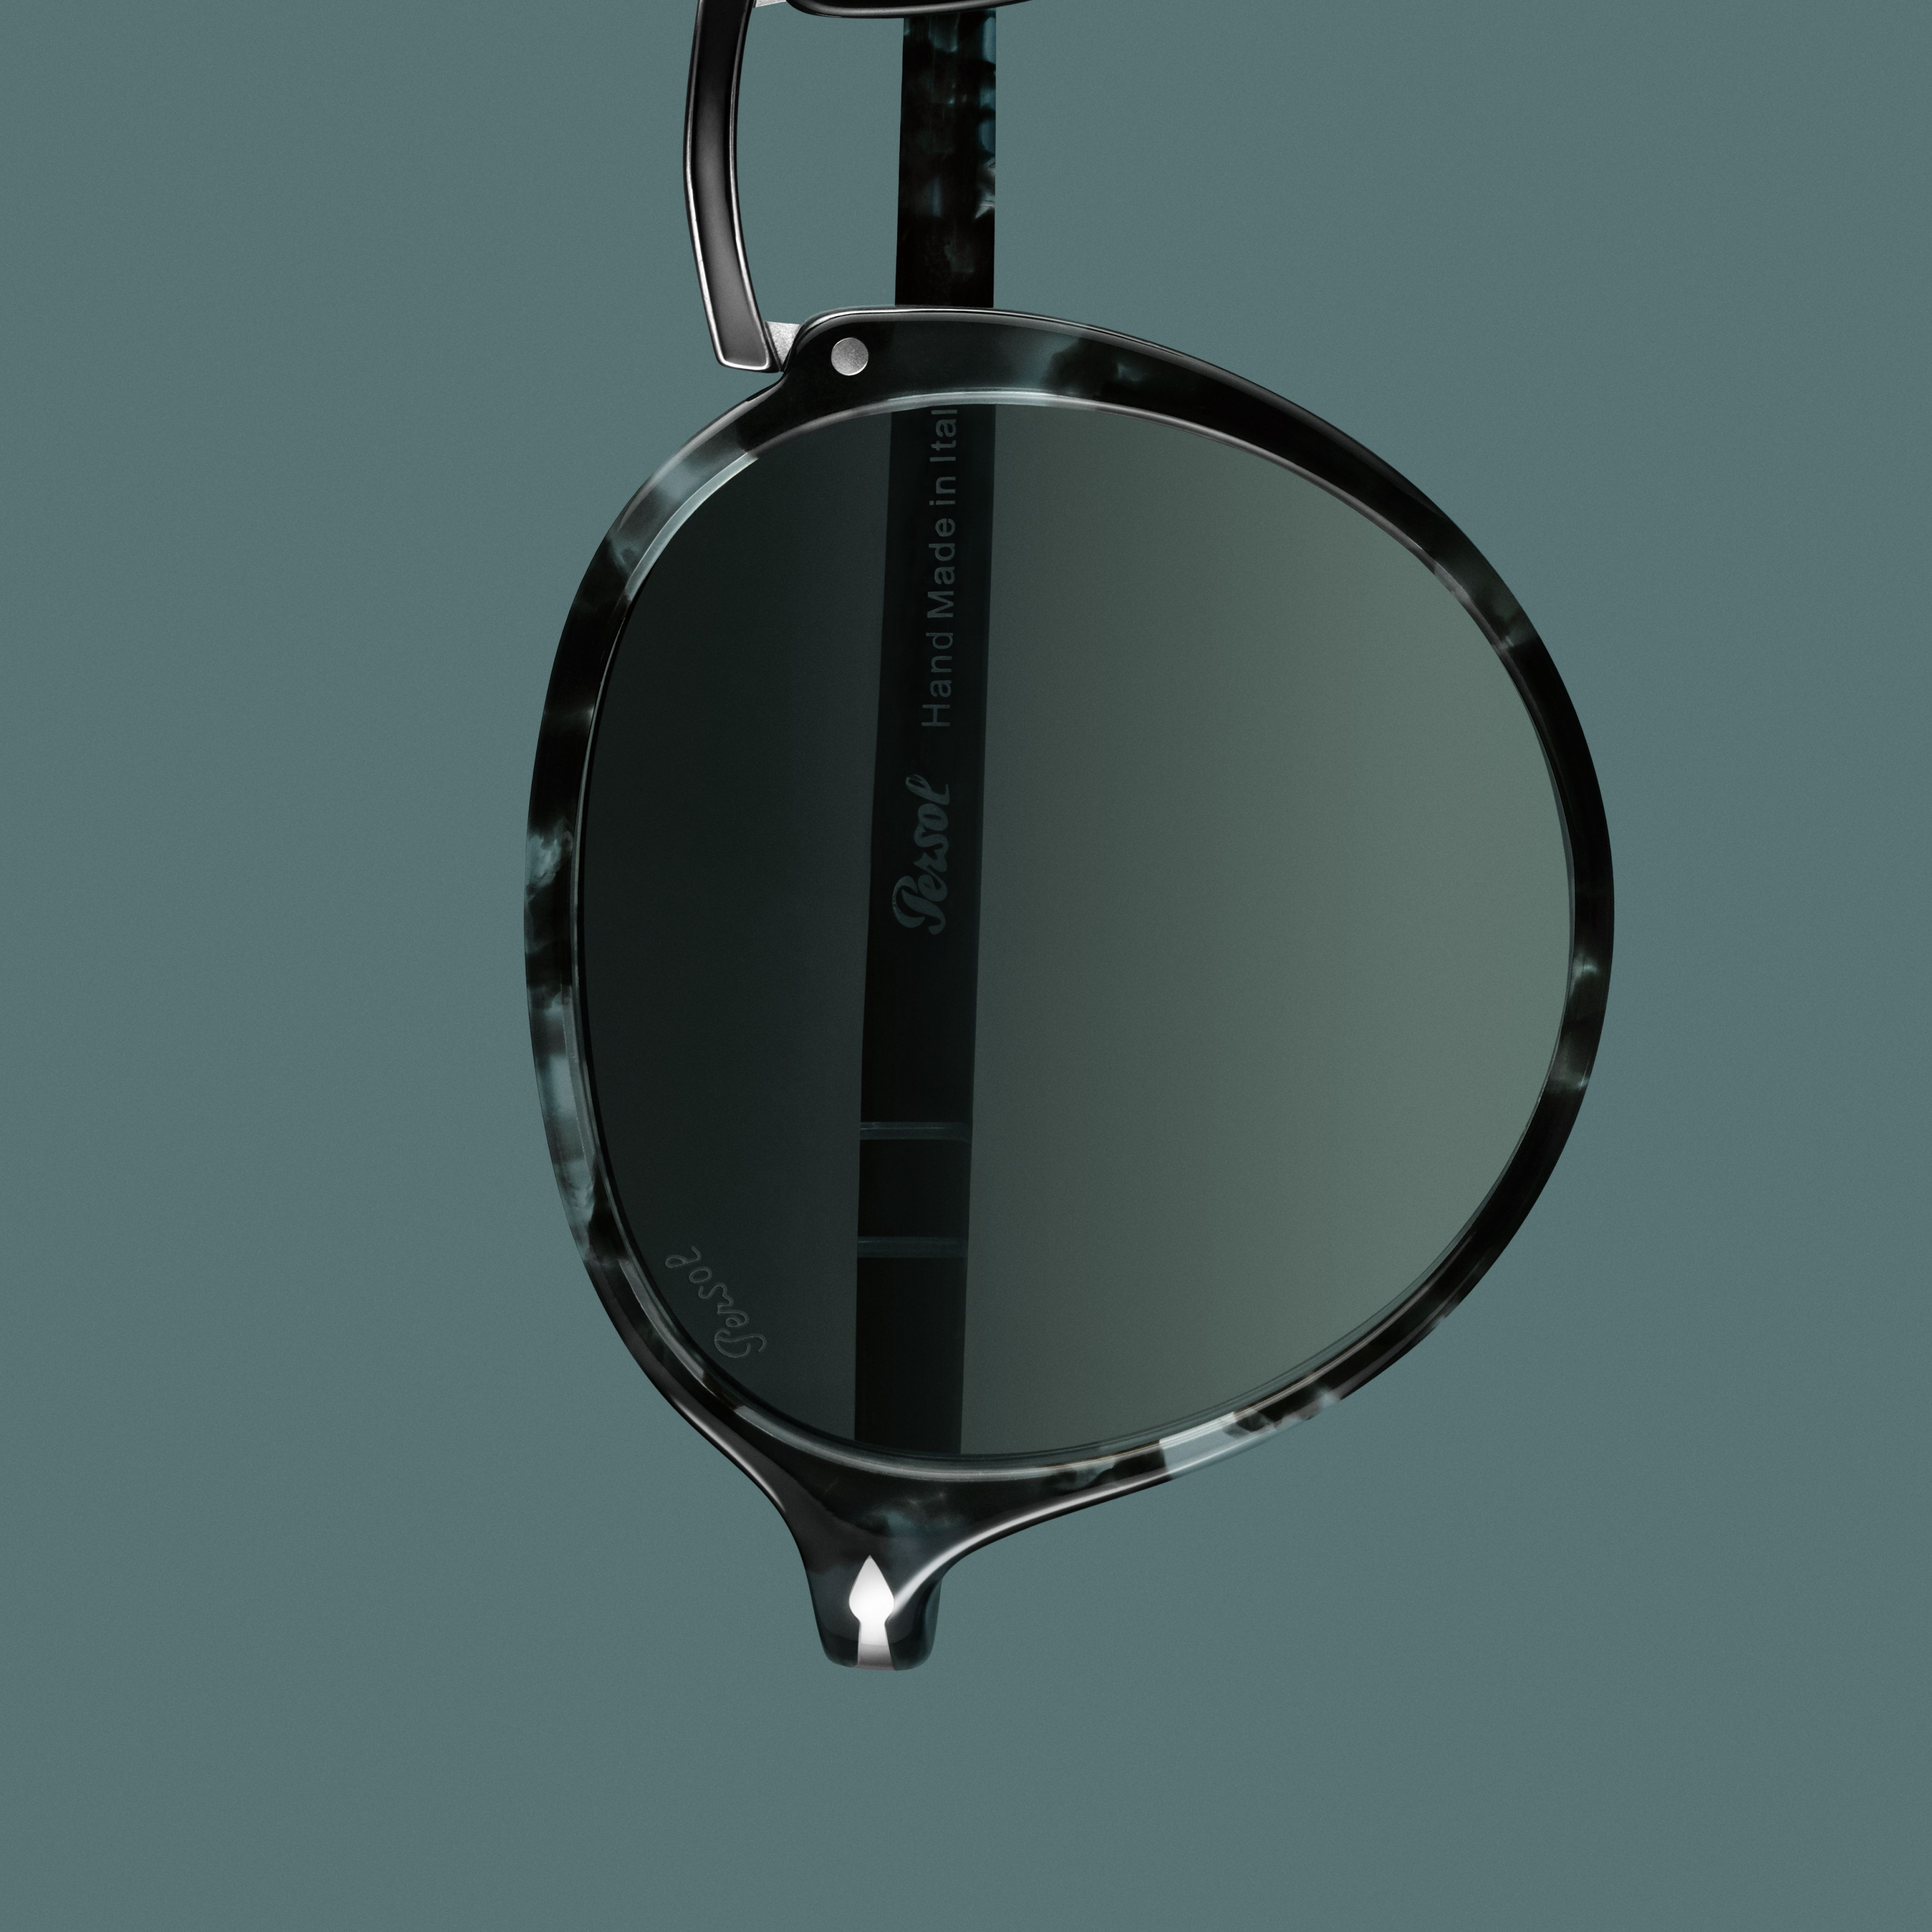 d6bd2b508cc8a What you give is what you get    PO3184S     GoodPointWellMade  Persol